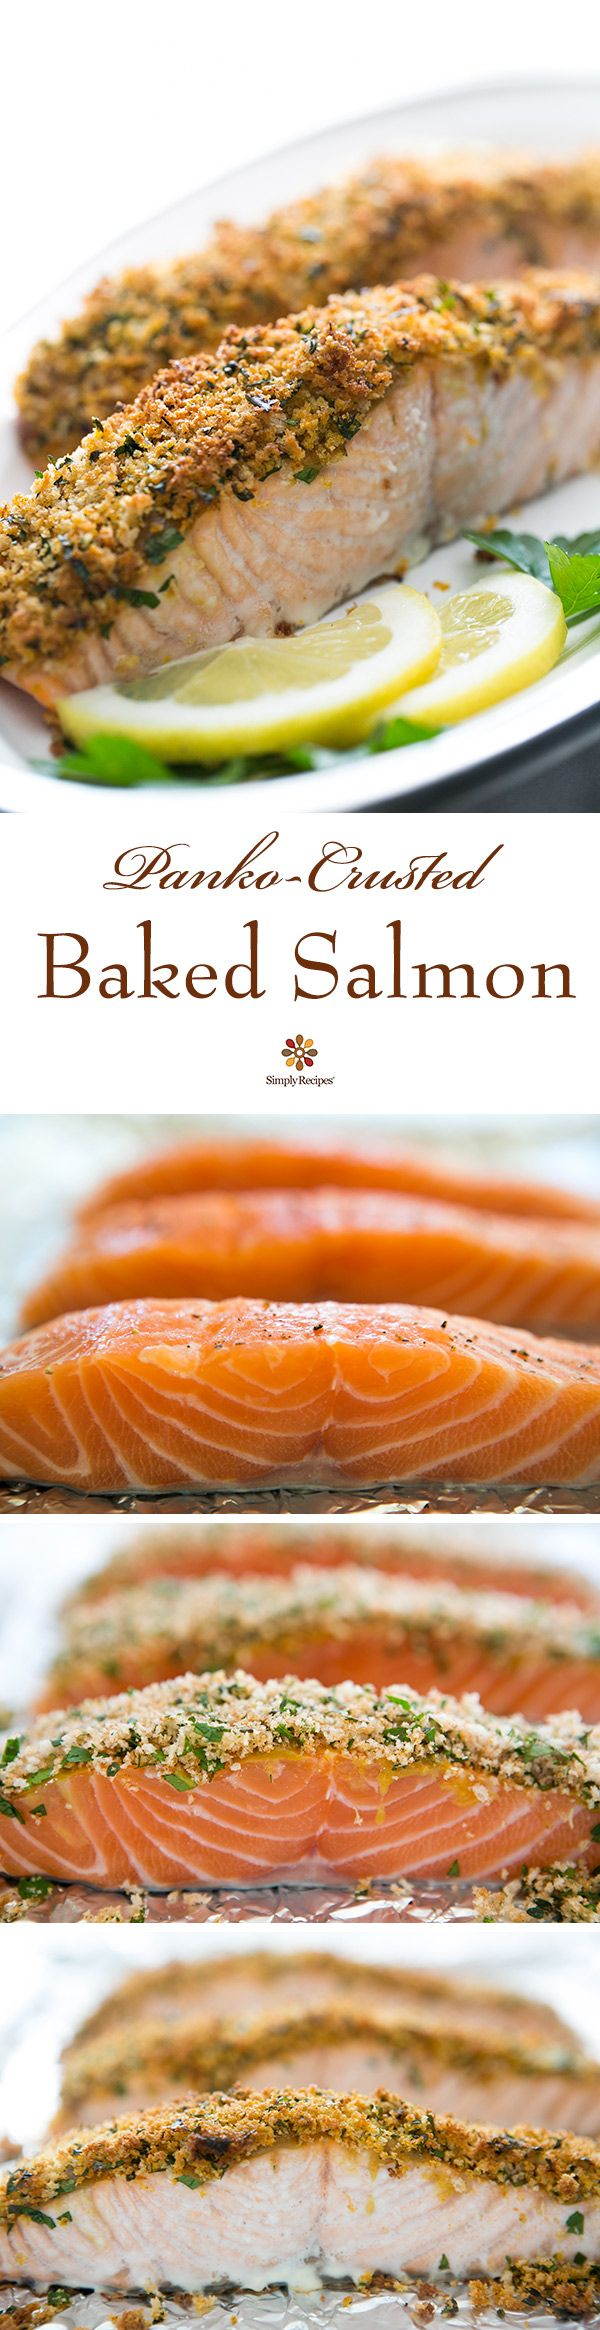 Panko-crusted baked salmon! Salmon steaks or fillets coated in honey ...